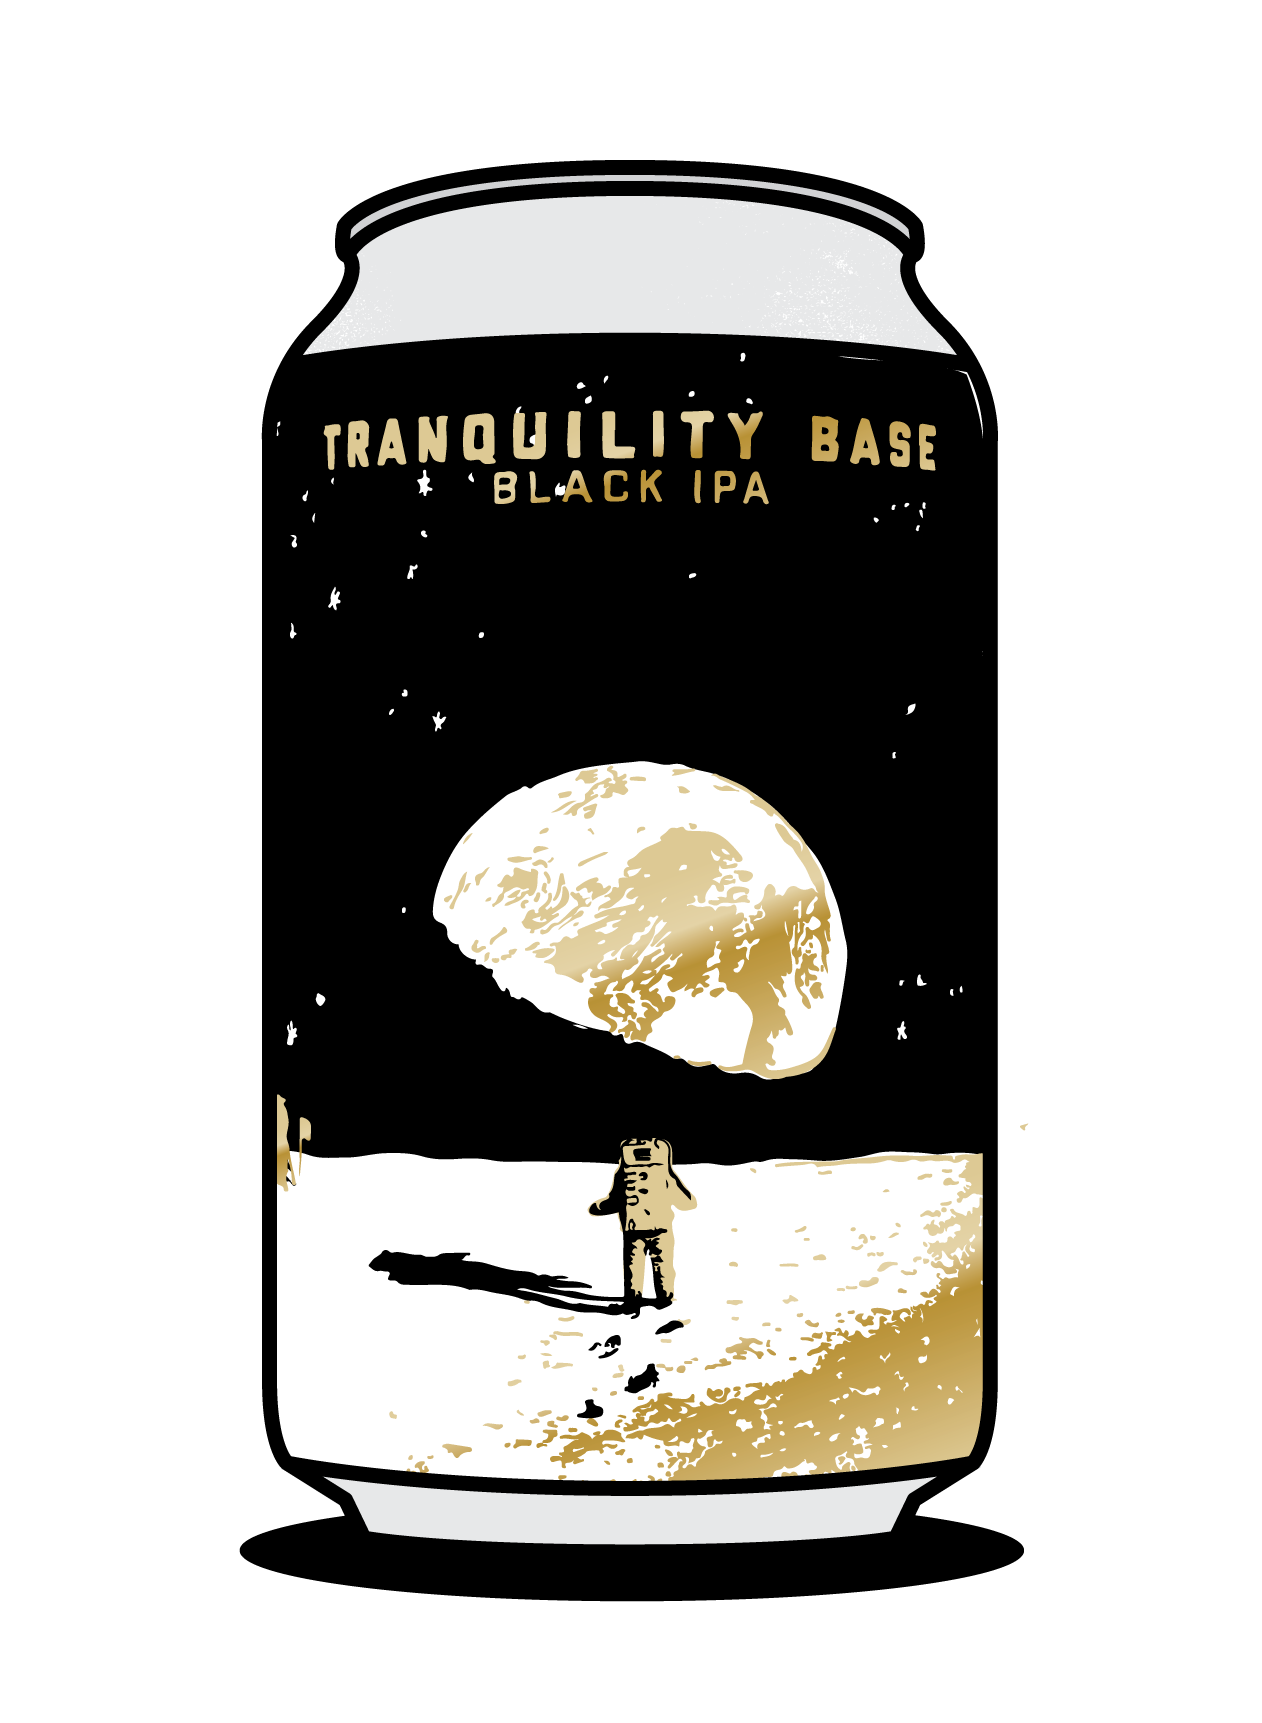 Space-Grant - Tranquility Base Image